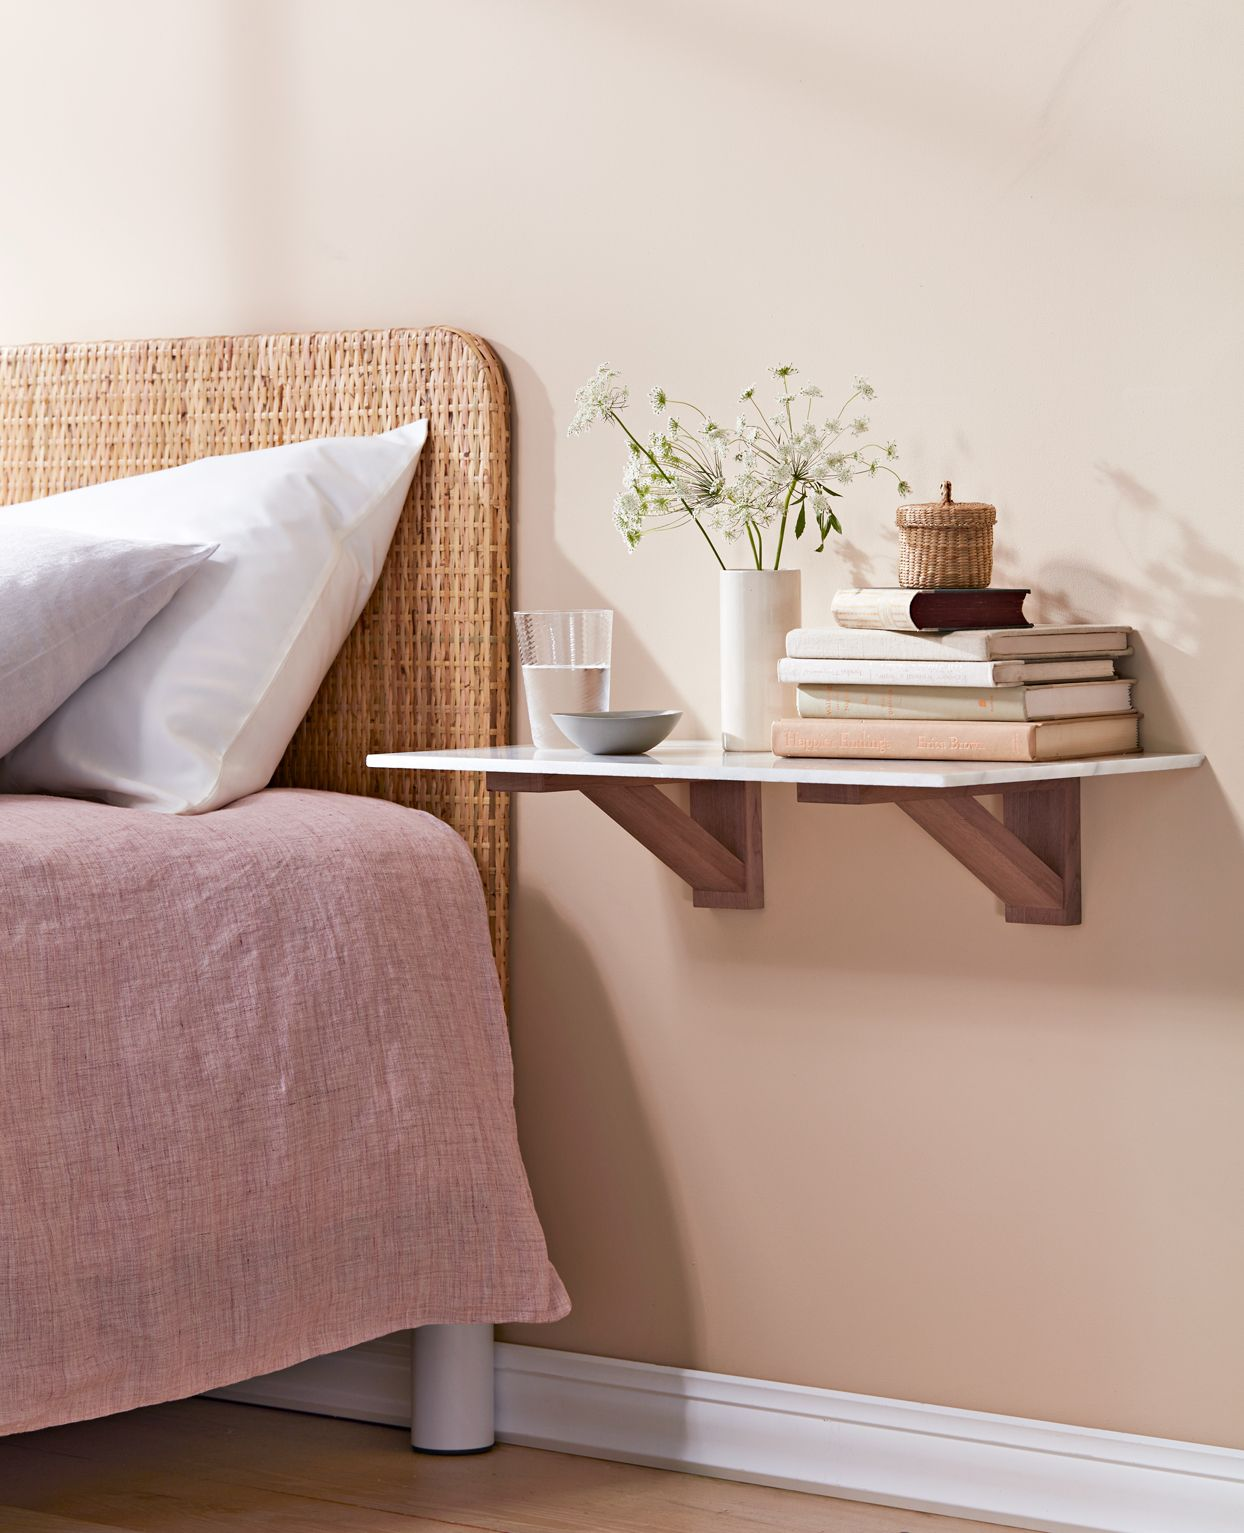 15 Little Things You Can Do To Beautify Your Bedroom In 2020 Floating Shelves Bedroom Floating Bedside Table Bedroom Decor